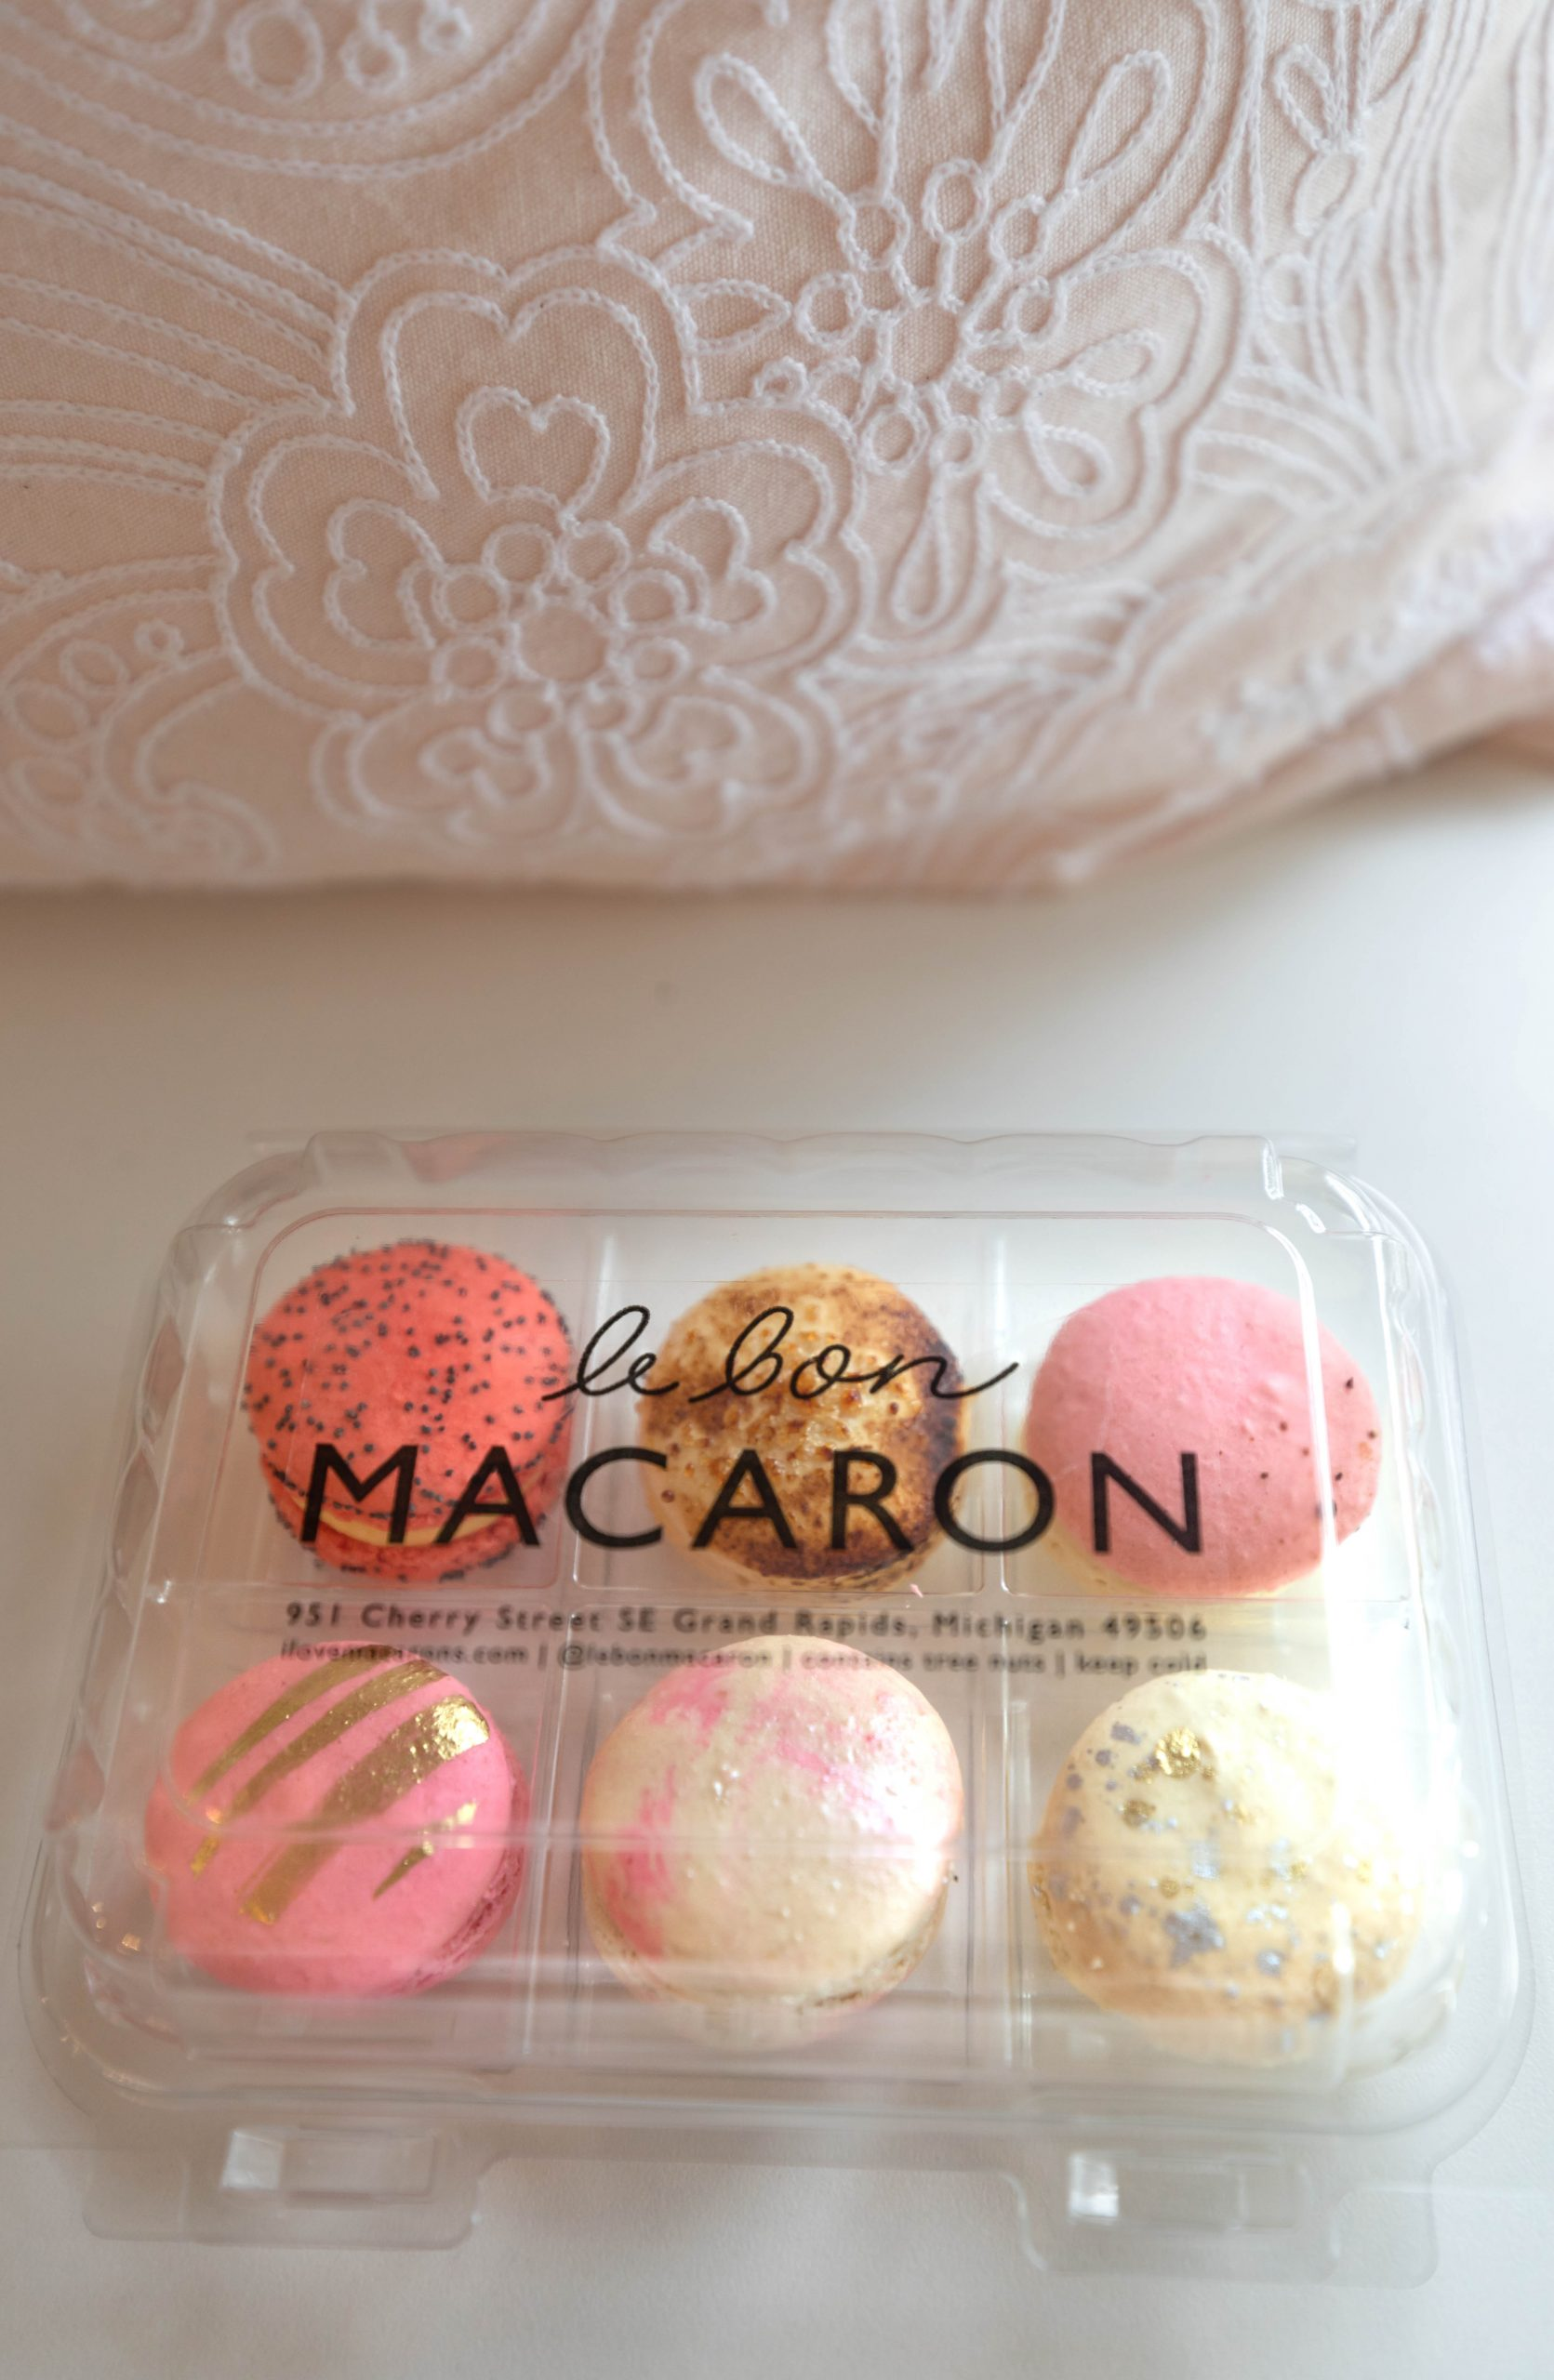 Le Bon Macaron in Ann Arbor and Grand Rapids Michigan Authentic French Macarons in Michigan by Annie Fairfax